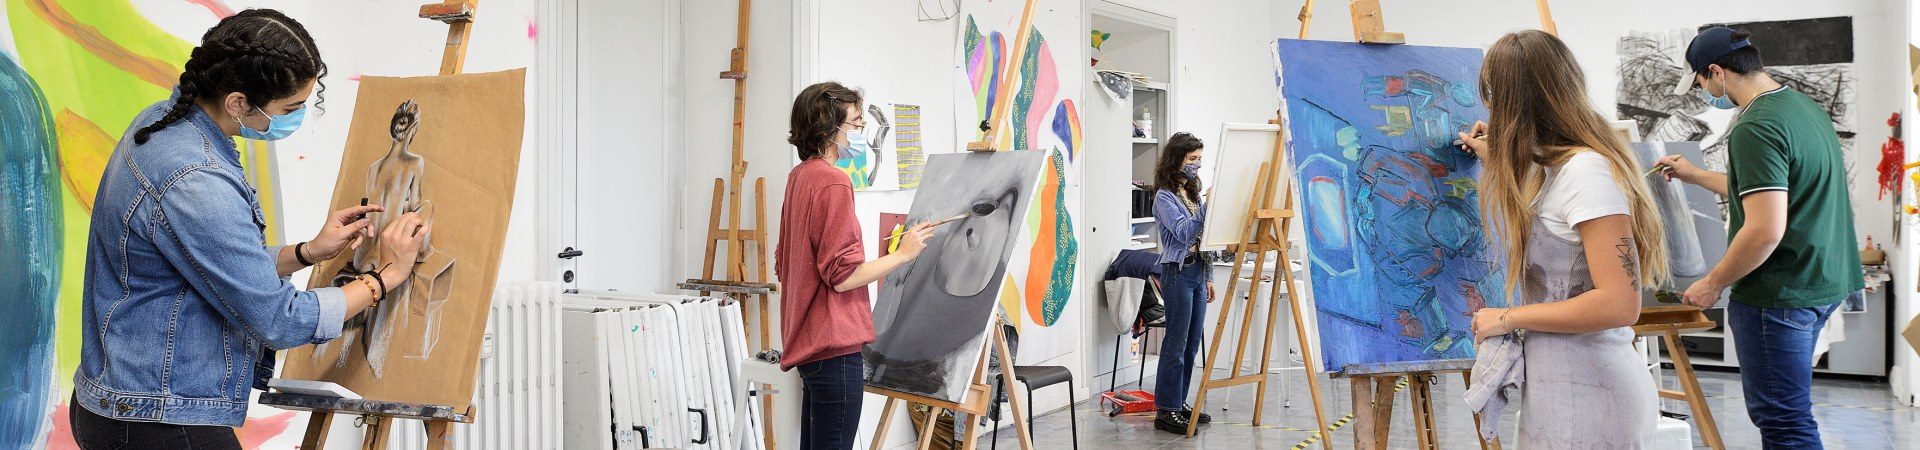 Studio Art Facilities | Study Studio Art in Rome, Italy | JCU